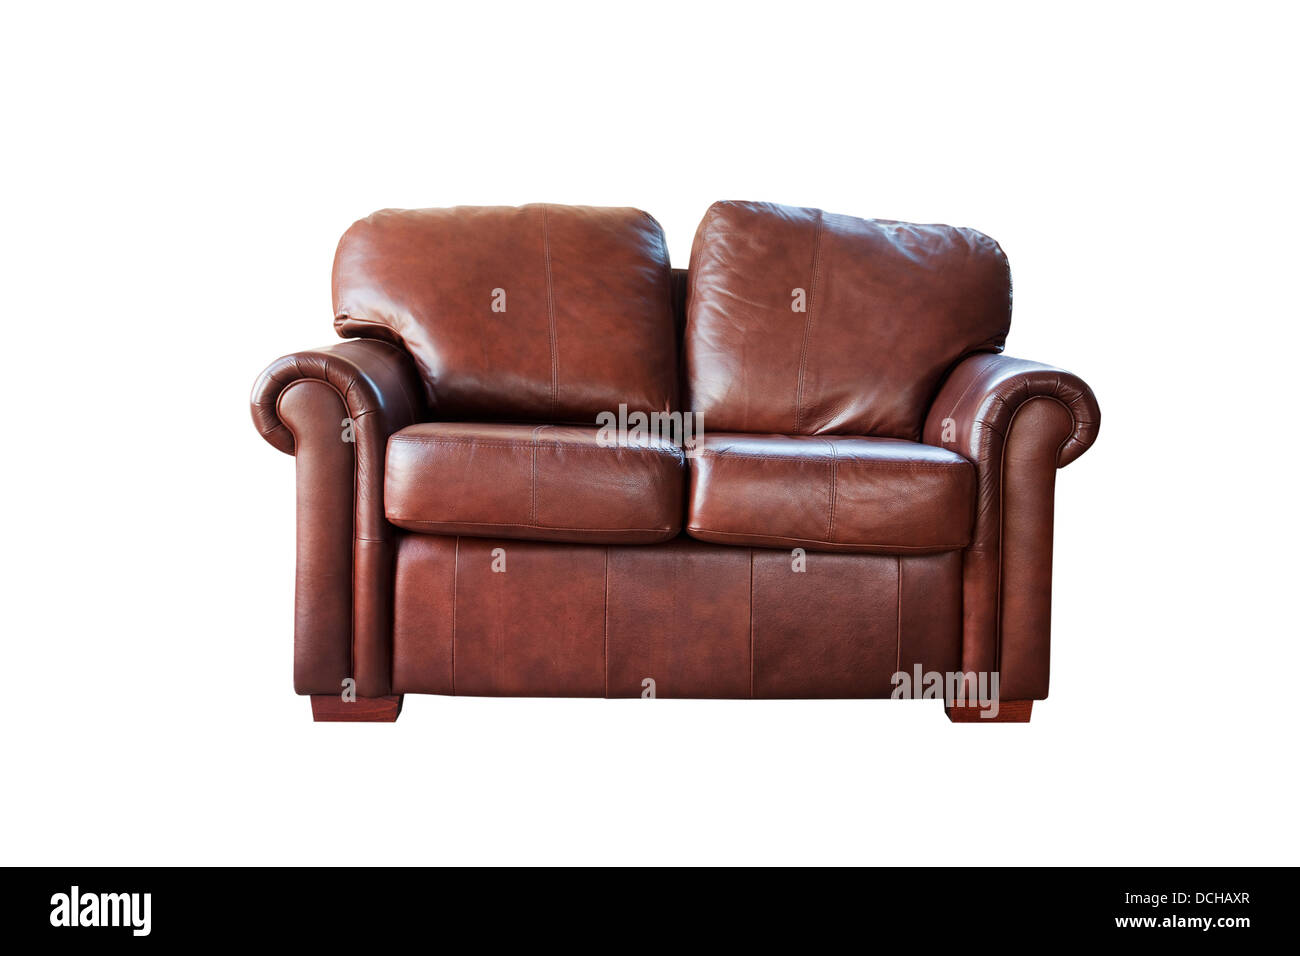 brown leather sofa cut out on white - Stock Image